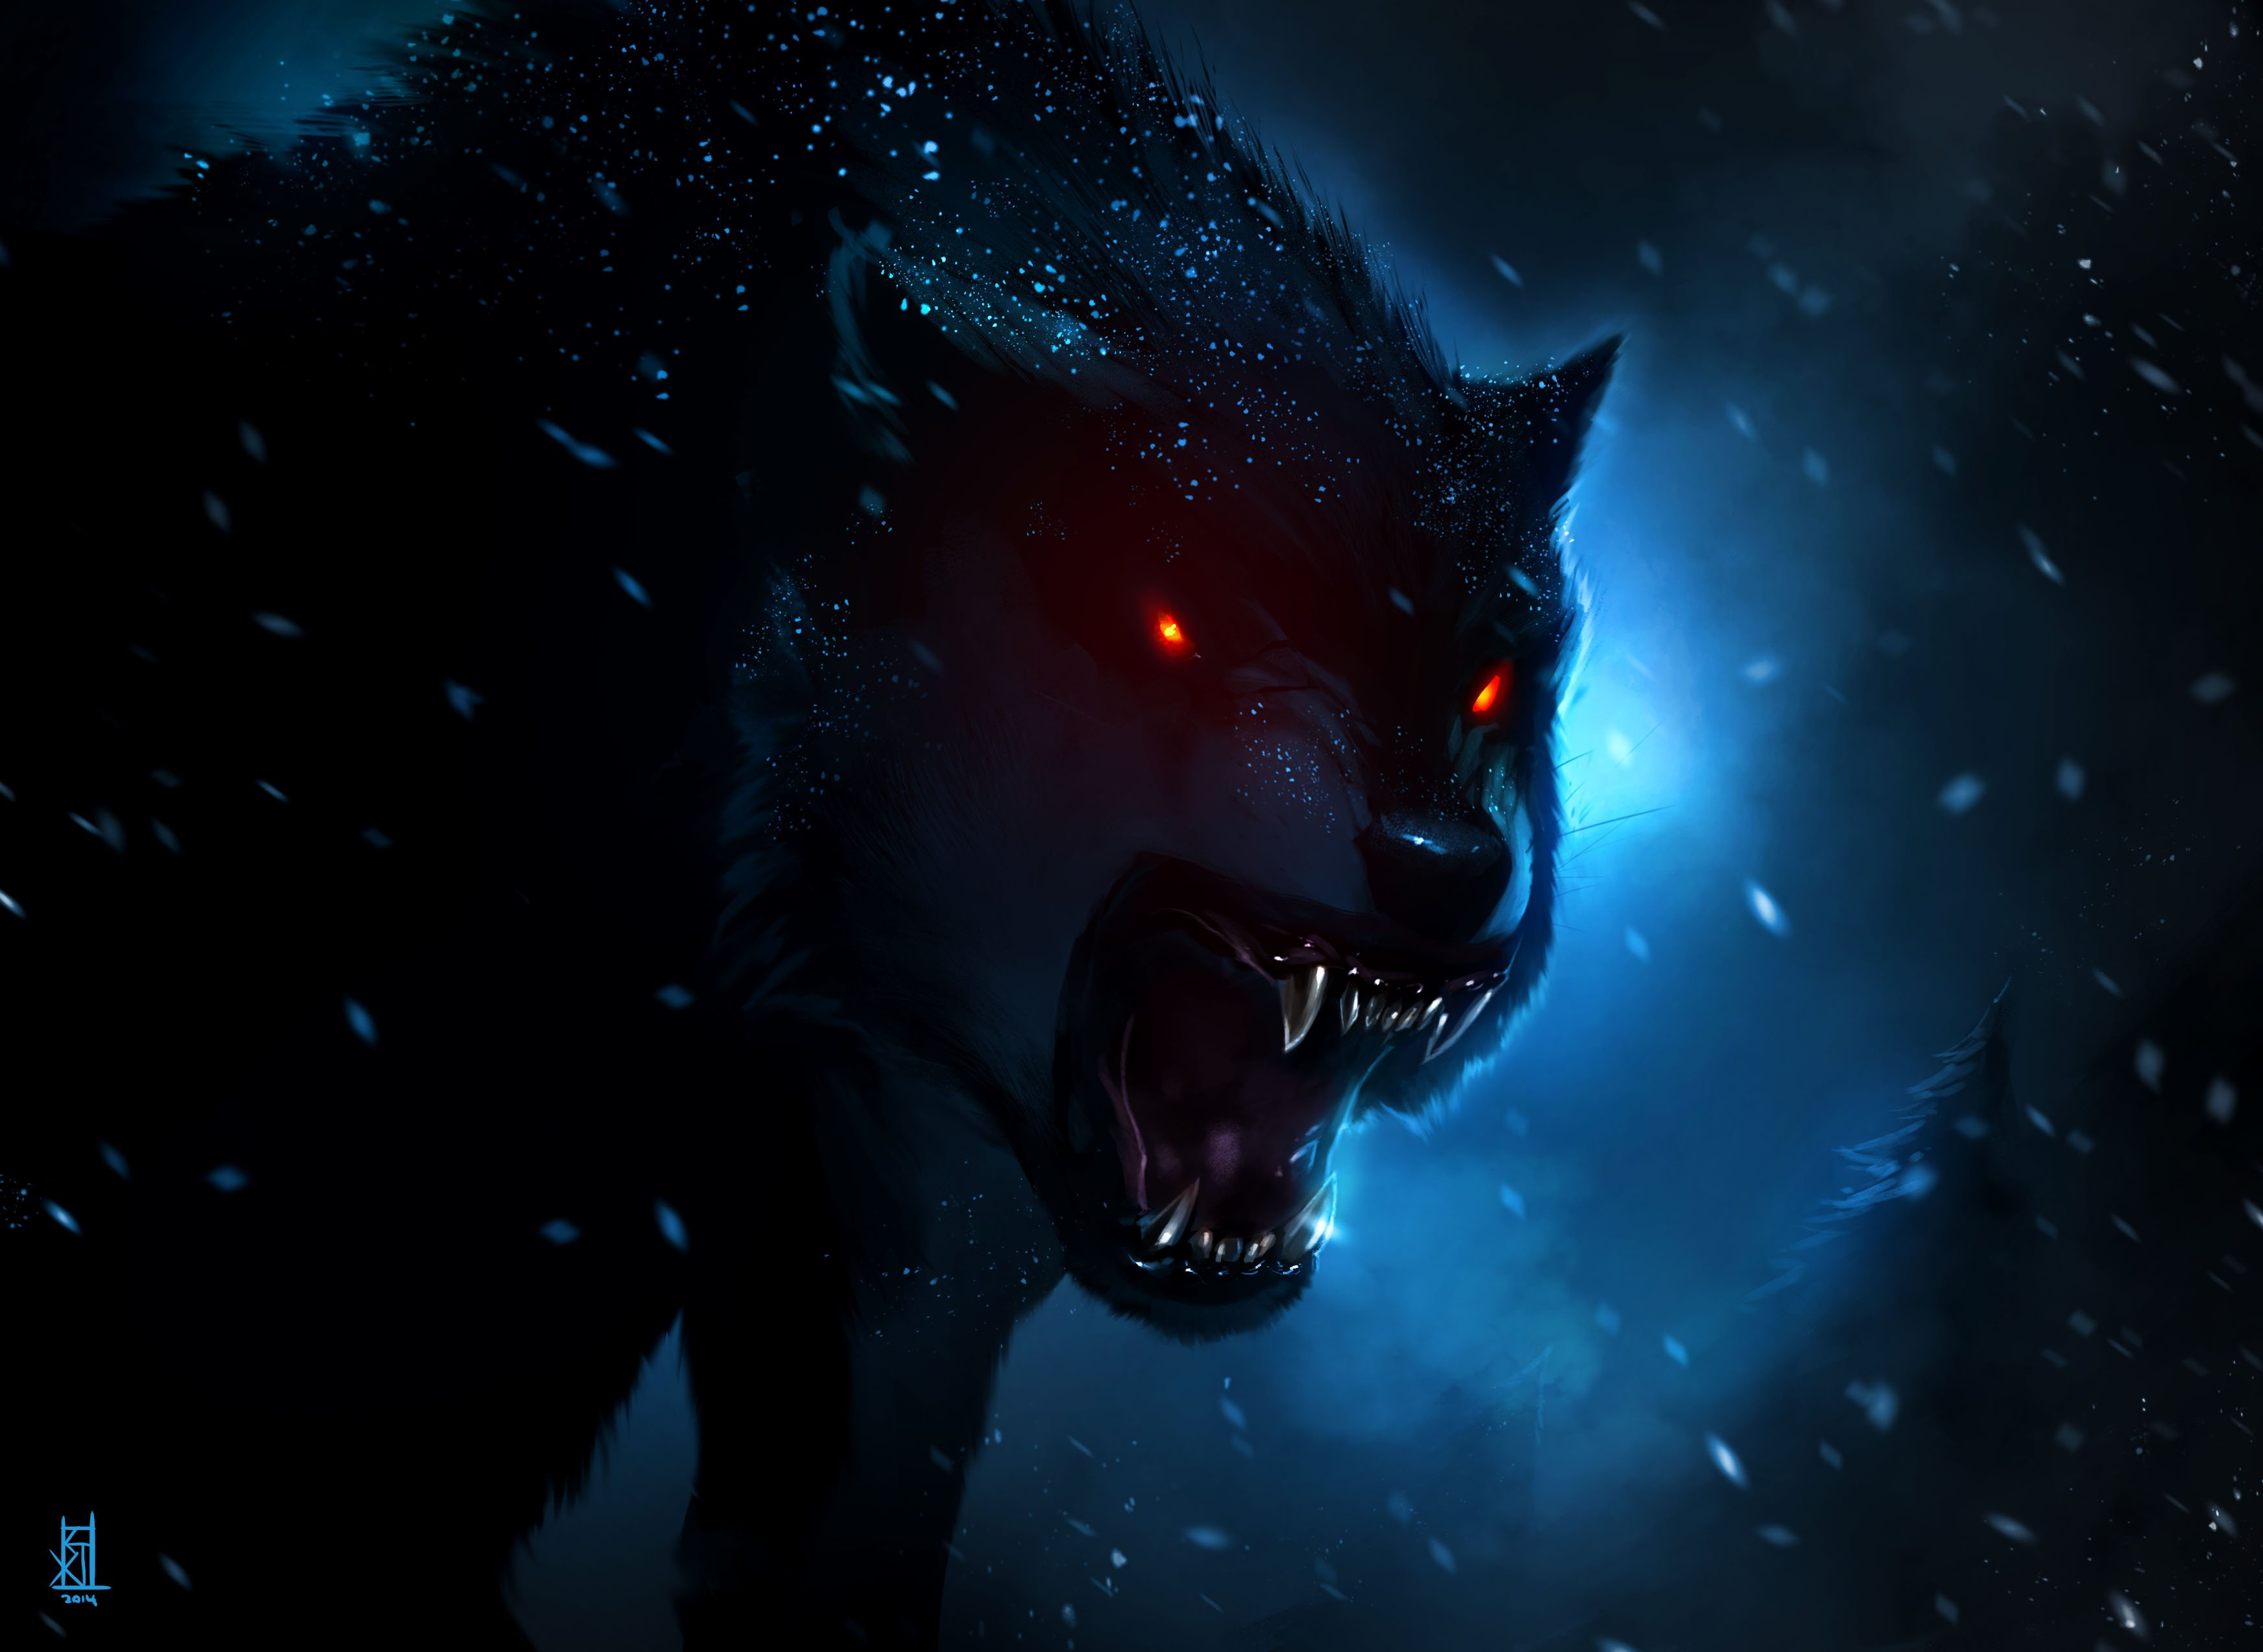 Black wolf with blue eyes drawing - photo#28